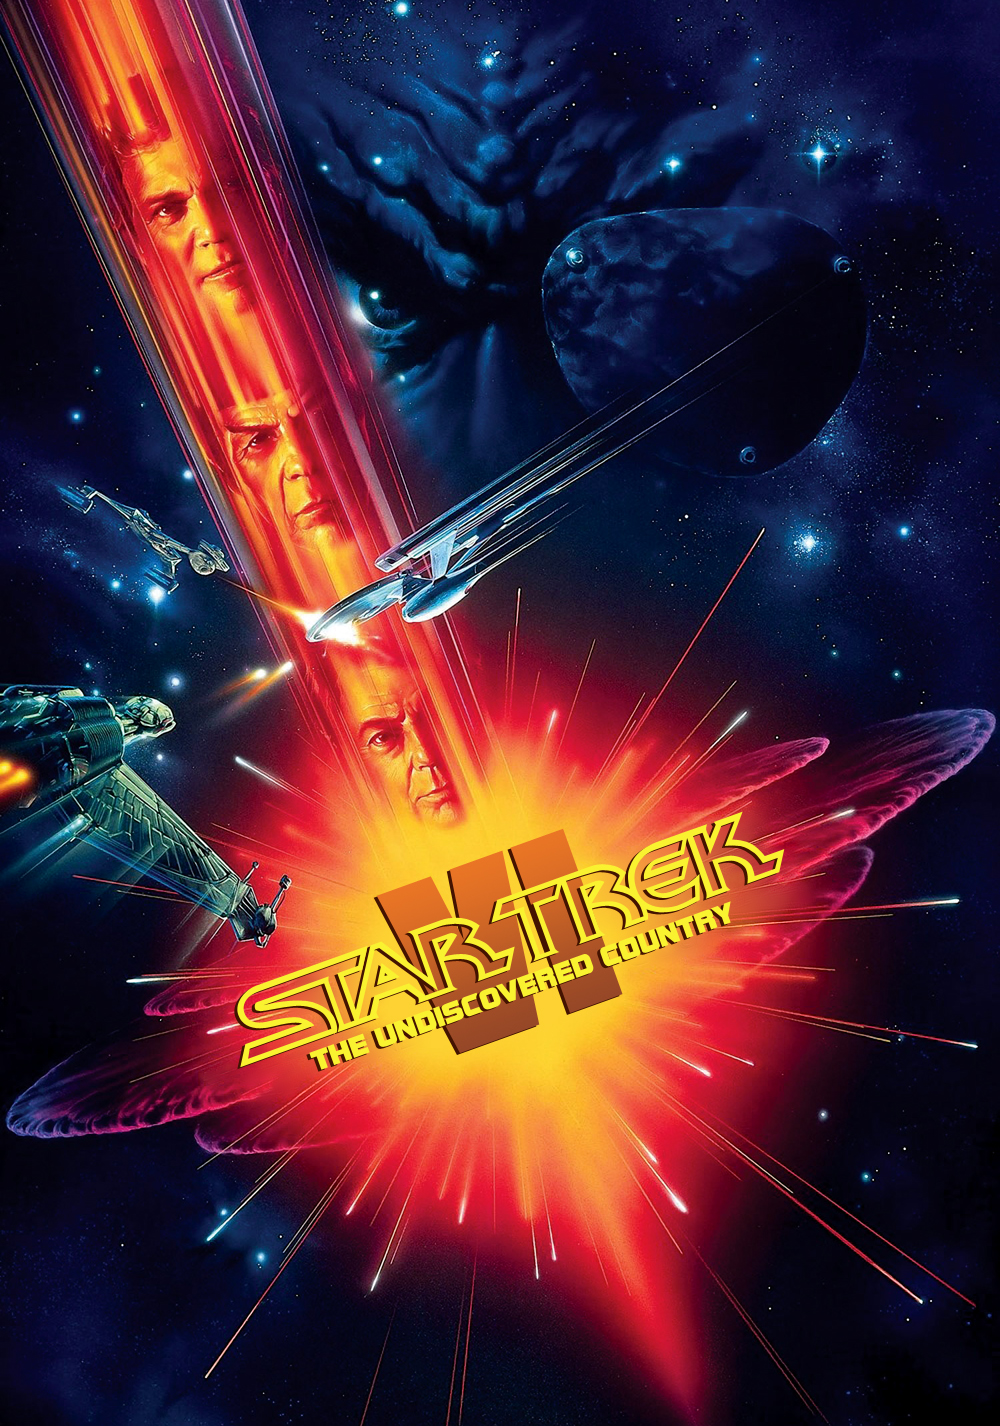 Star Trek VI: The Undiscovered Country The_Undiscovered_Country_poster